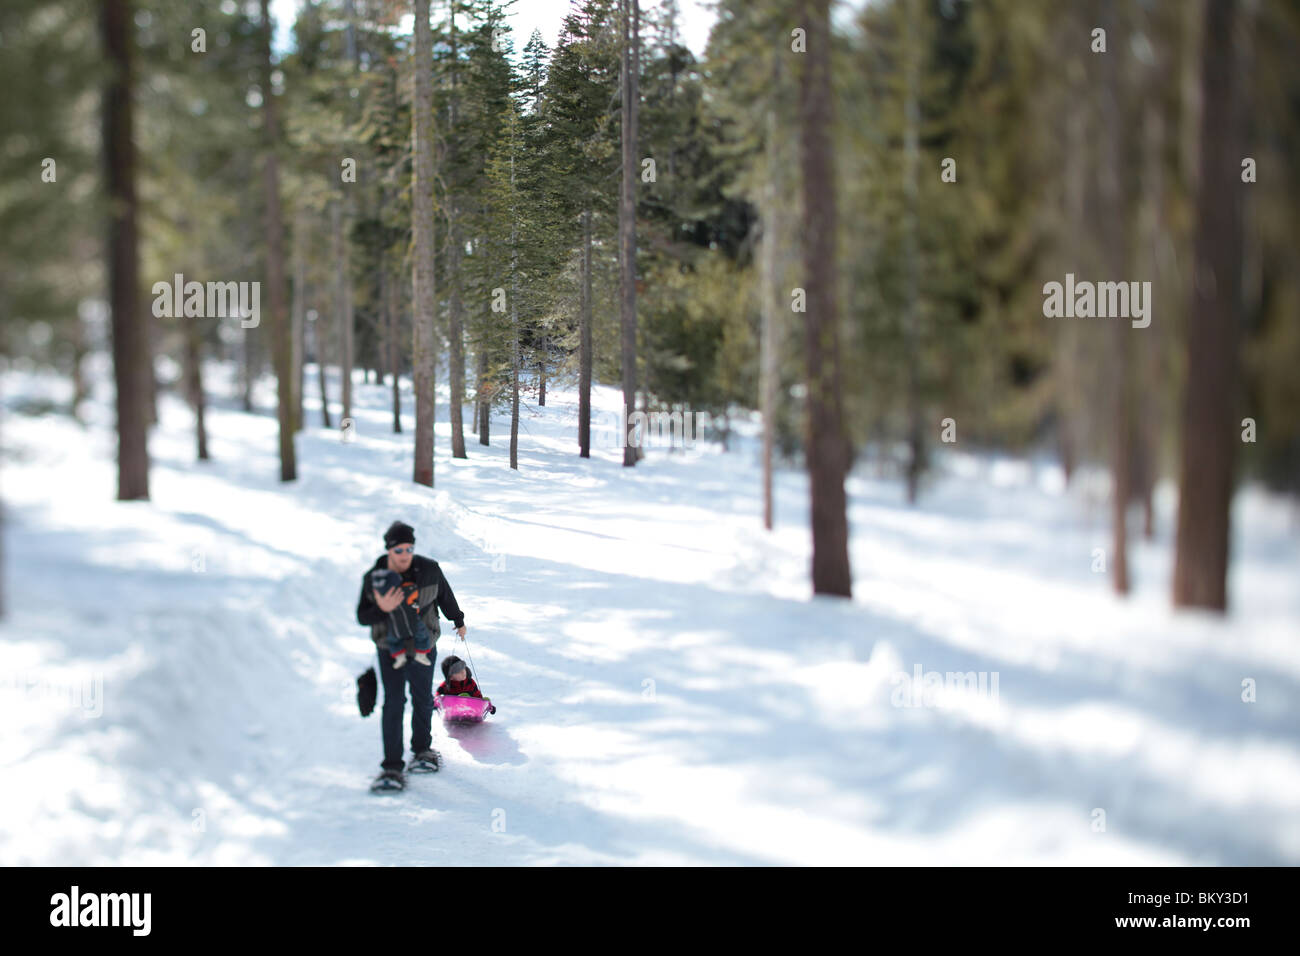 A father snowshoe with an infant and a toddler in the snow covered wilderness of Lake Tahoe, Calfornia. - Stock Image